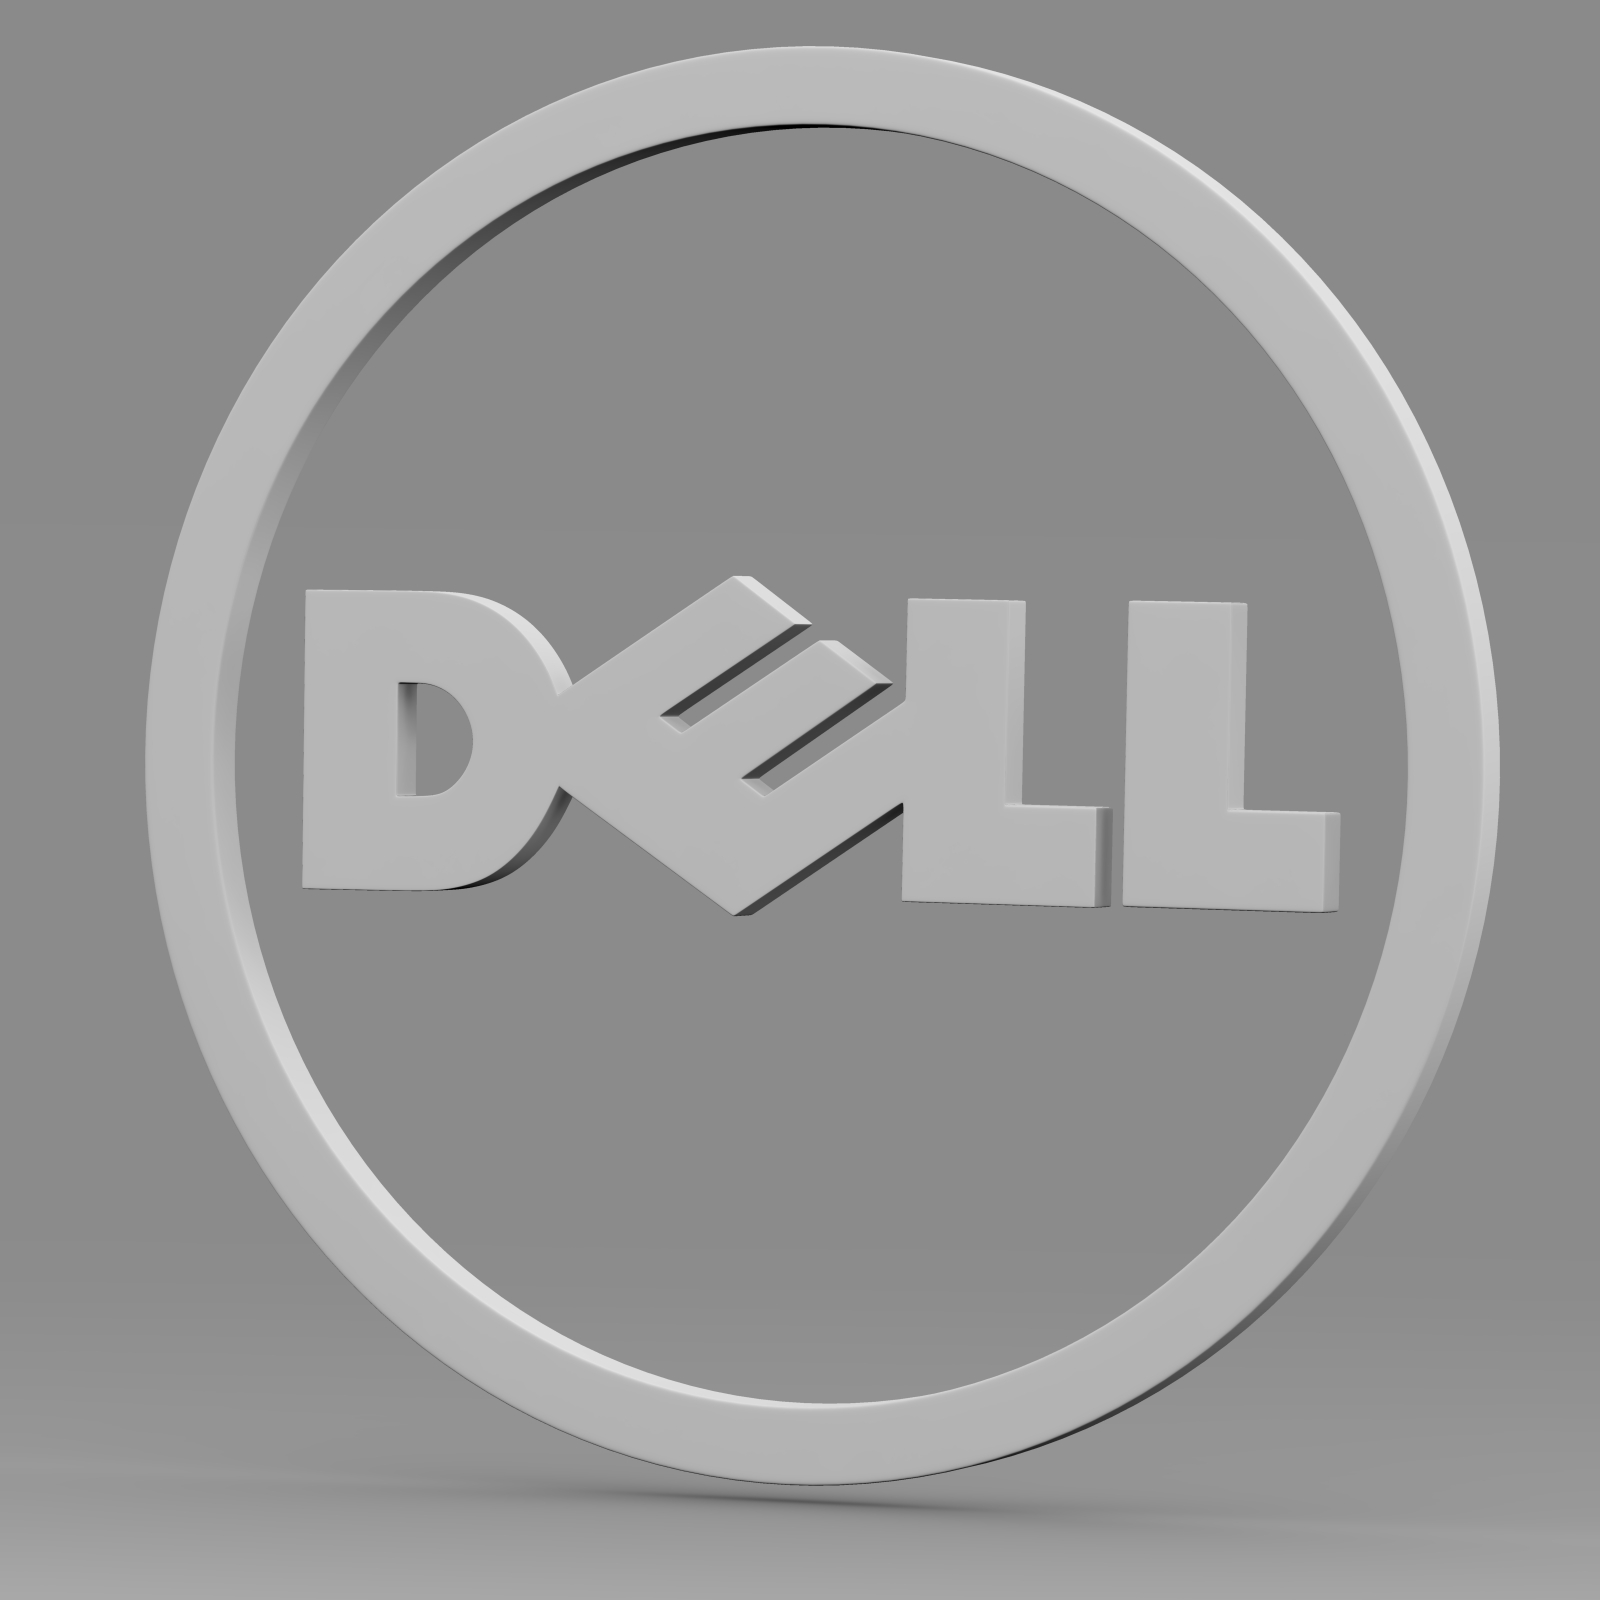 dell logo 2 3d model 3ds fbx c4d lwo ma mb hrc xsi  obj 223629